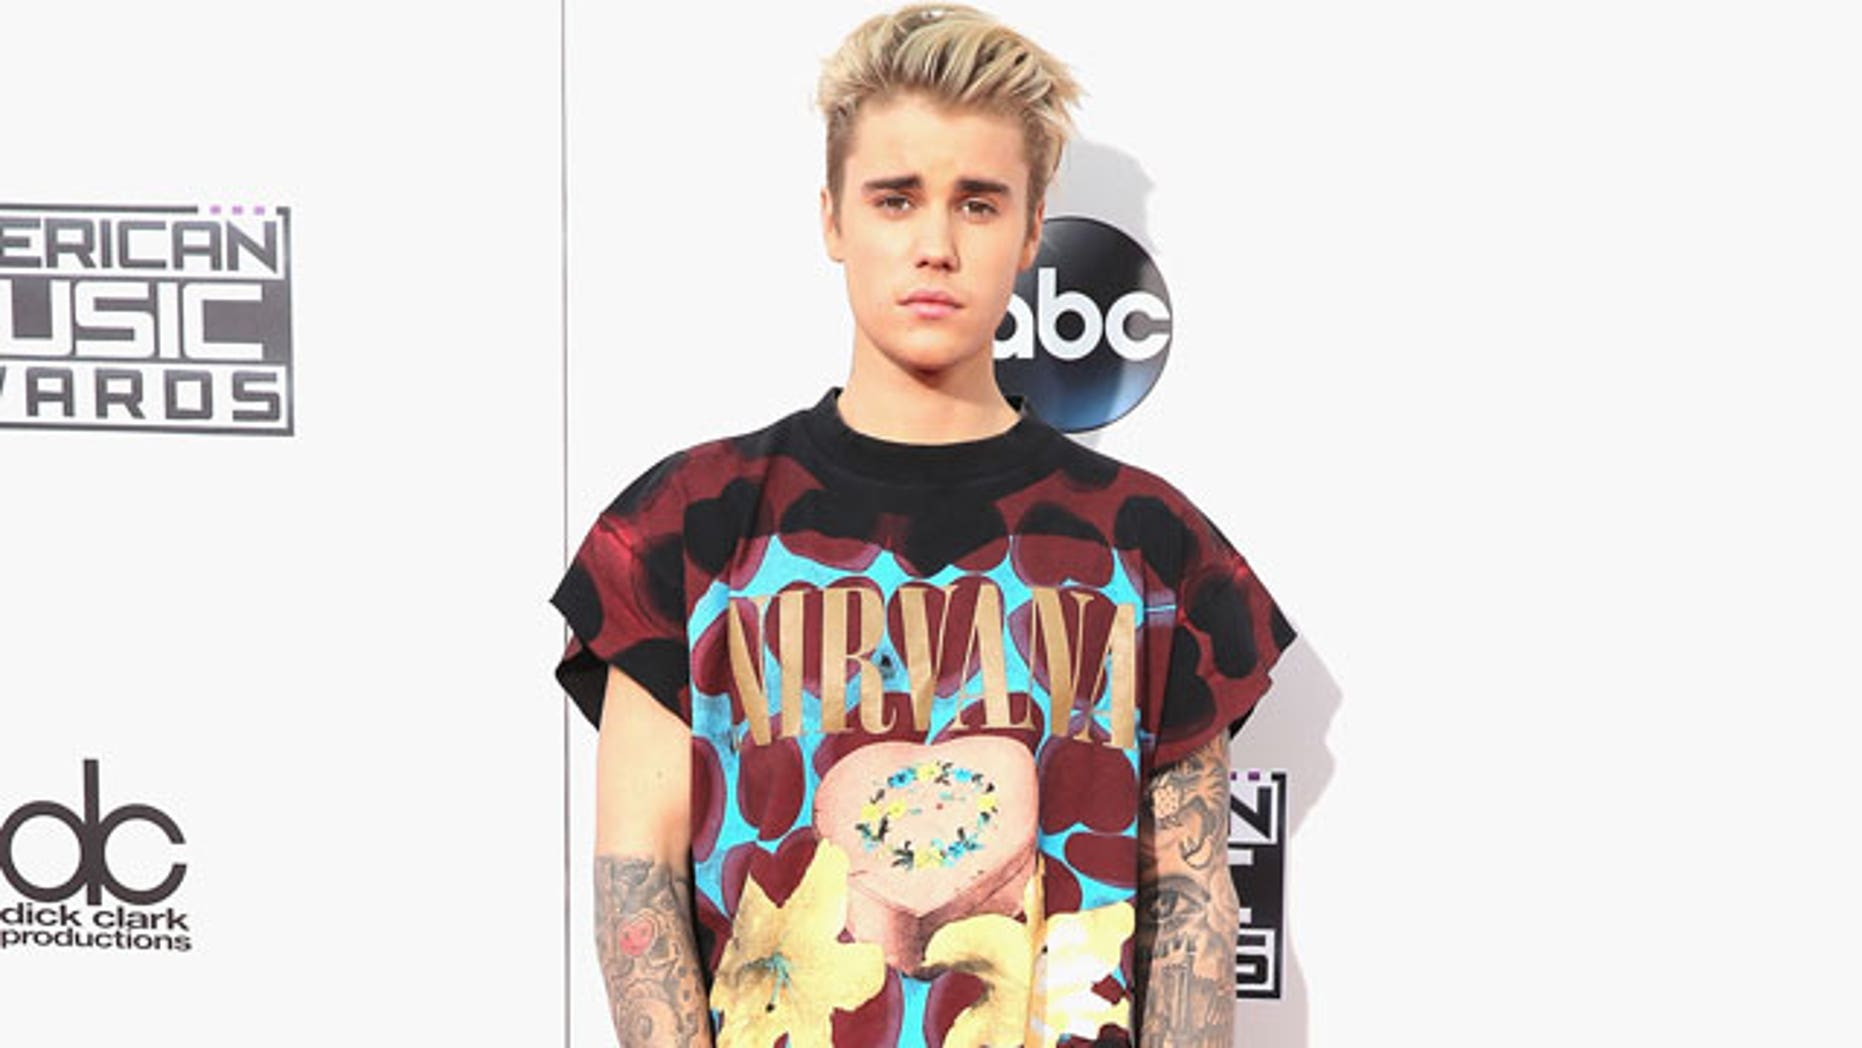 Justin Bieber at the American Music Awards in 2015.